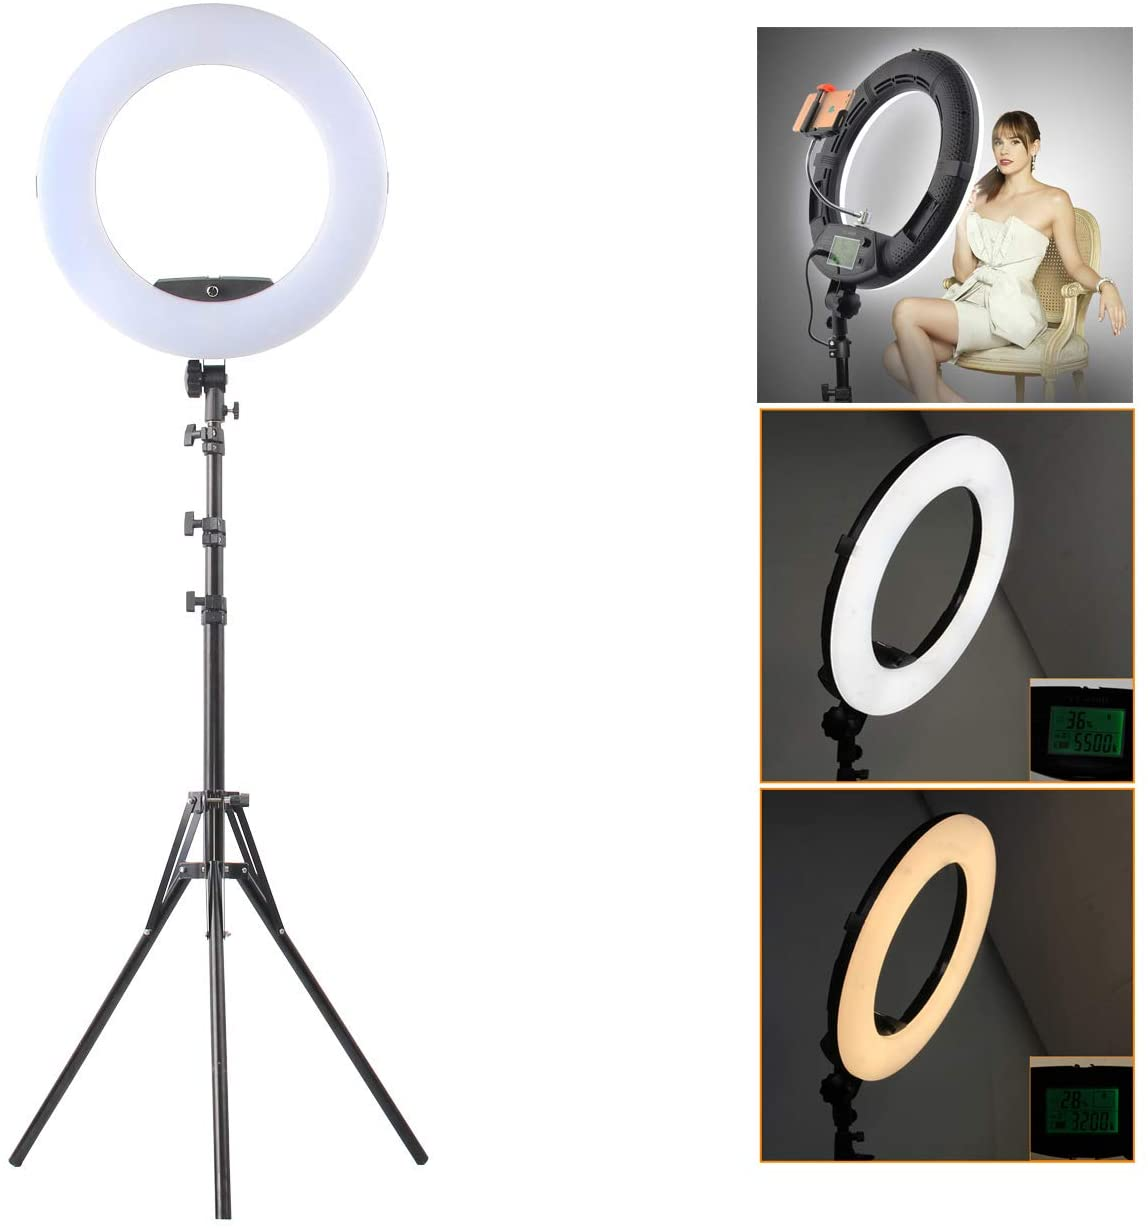 HULYZLB LED Ring Light18''/45CM Dimmable LED Ring Light with Stand, Camera Photo Video Lightning Kit, 96W 5500K/ YouTube/Video Shooting -